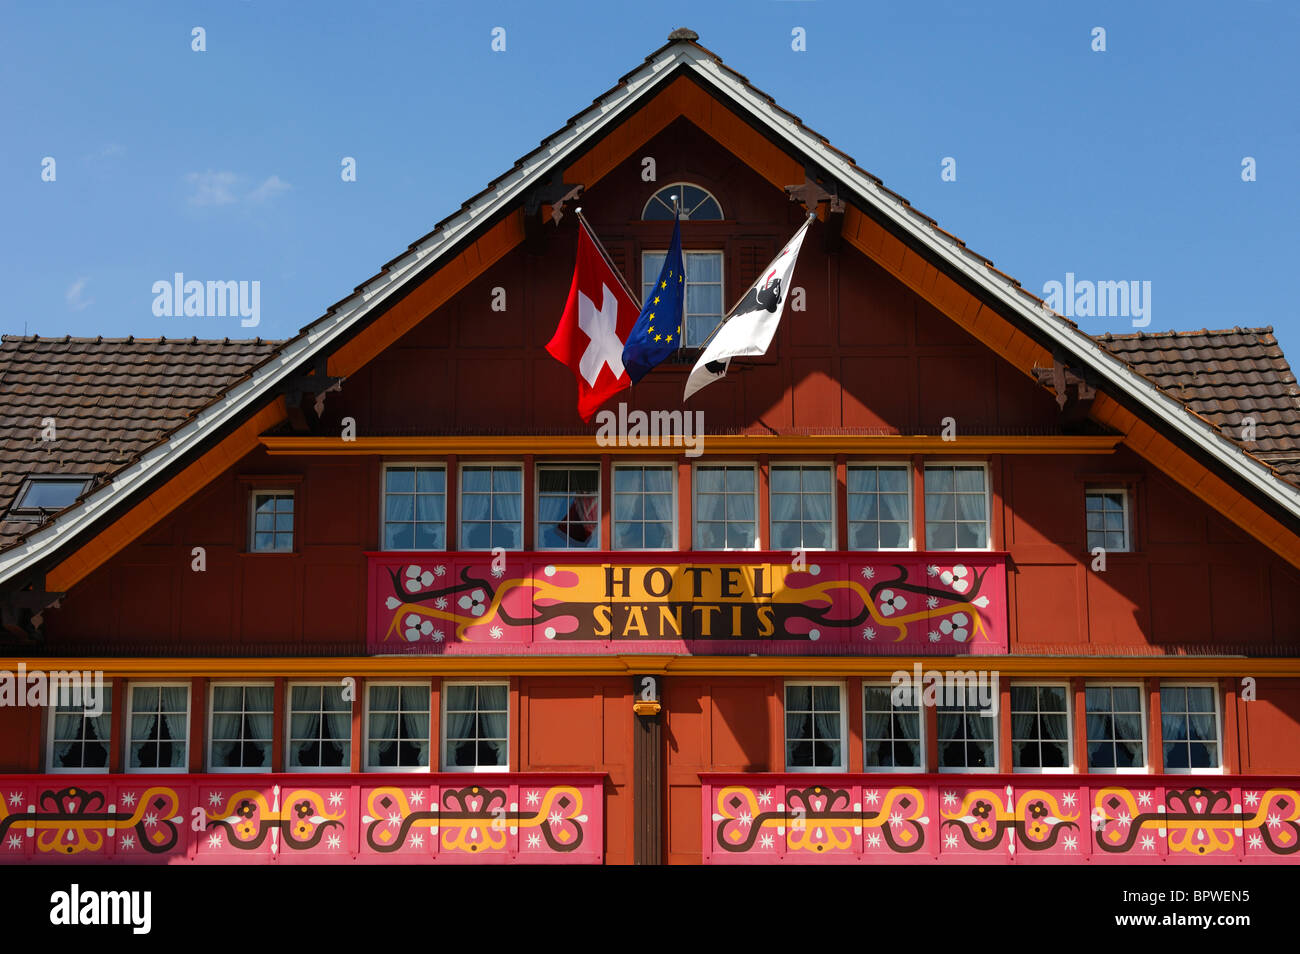 Romantik-Hotel Säntis with its magnificent facade, Appenzell, Switzerland - Stock Image